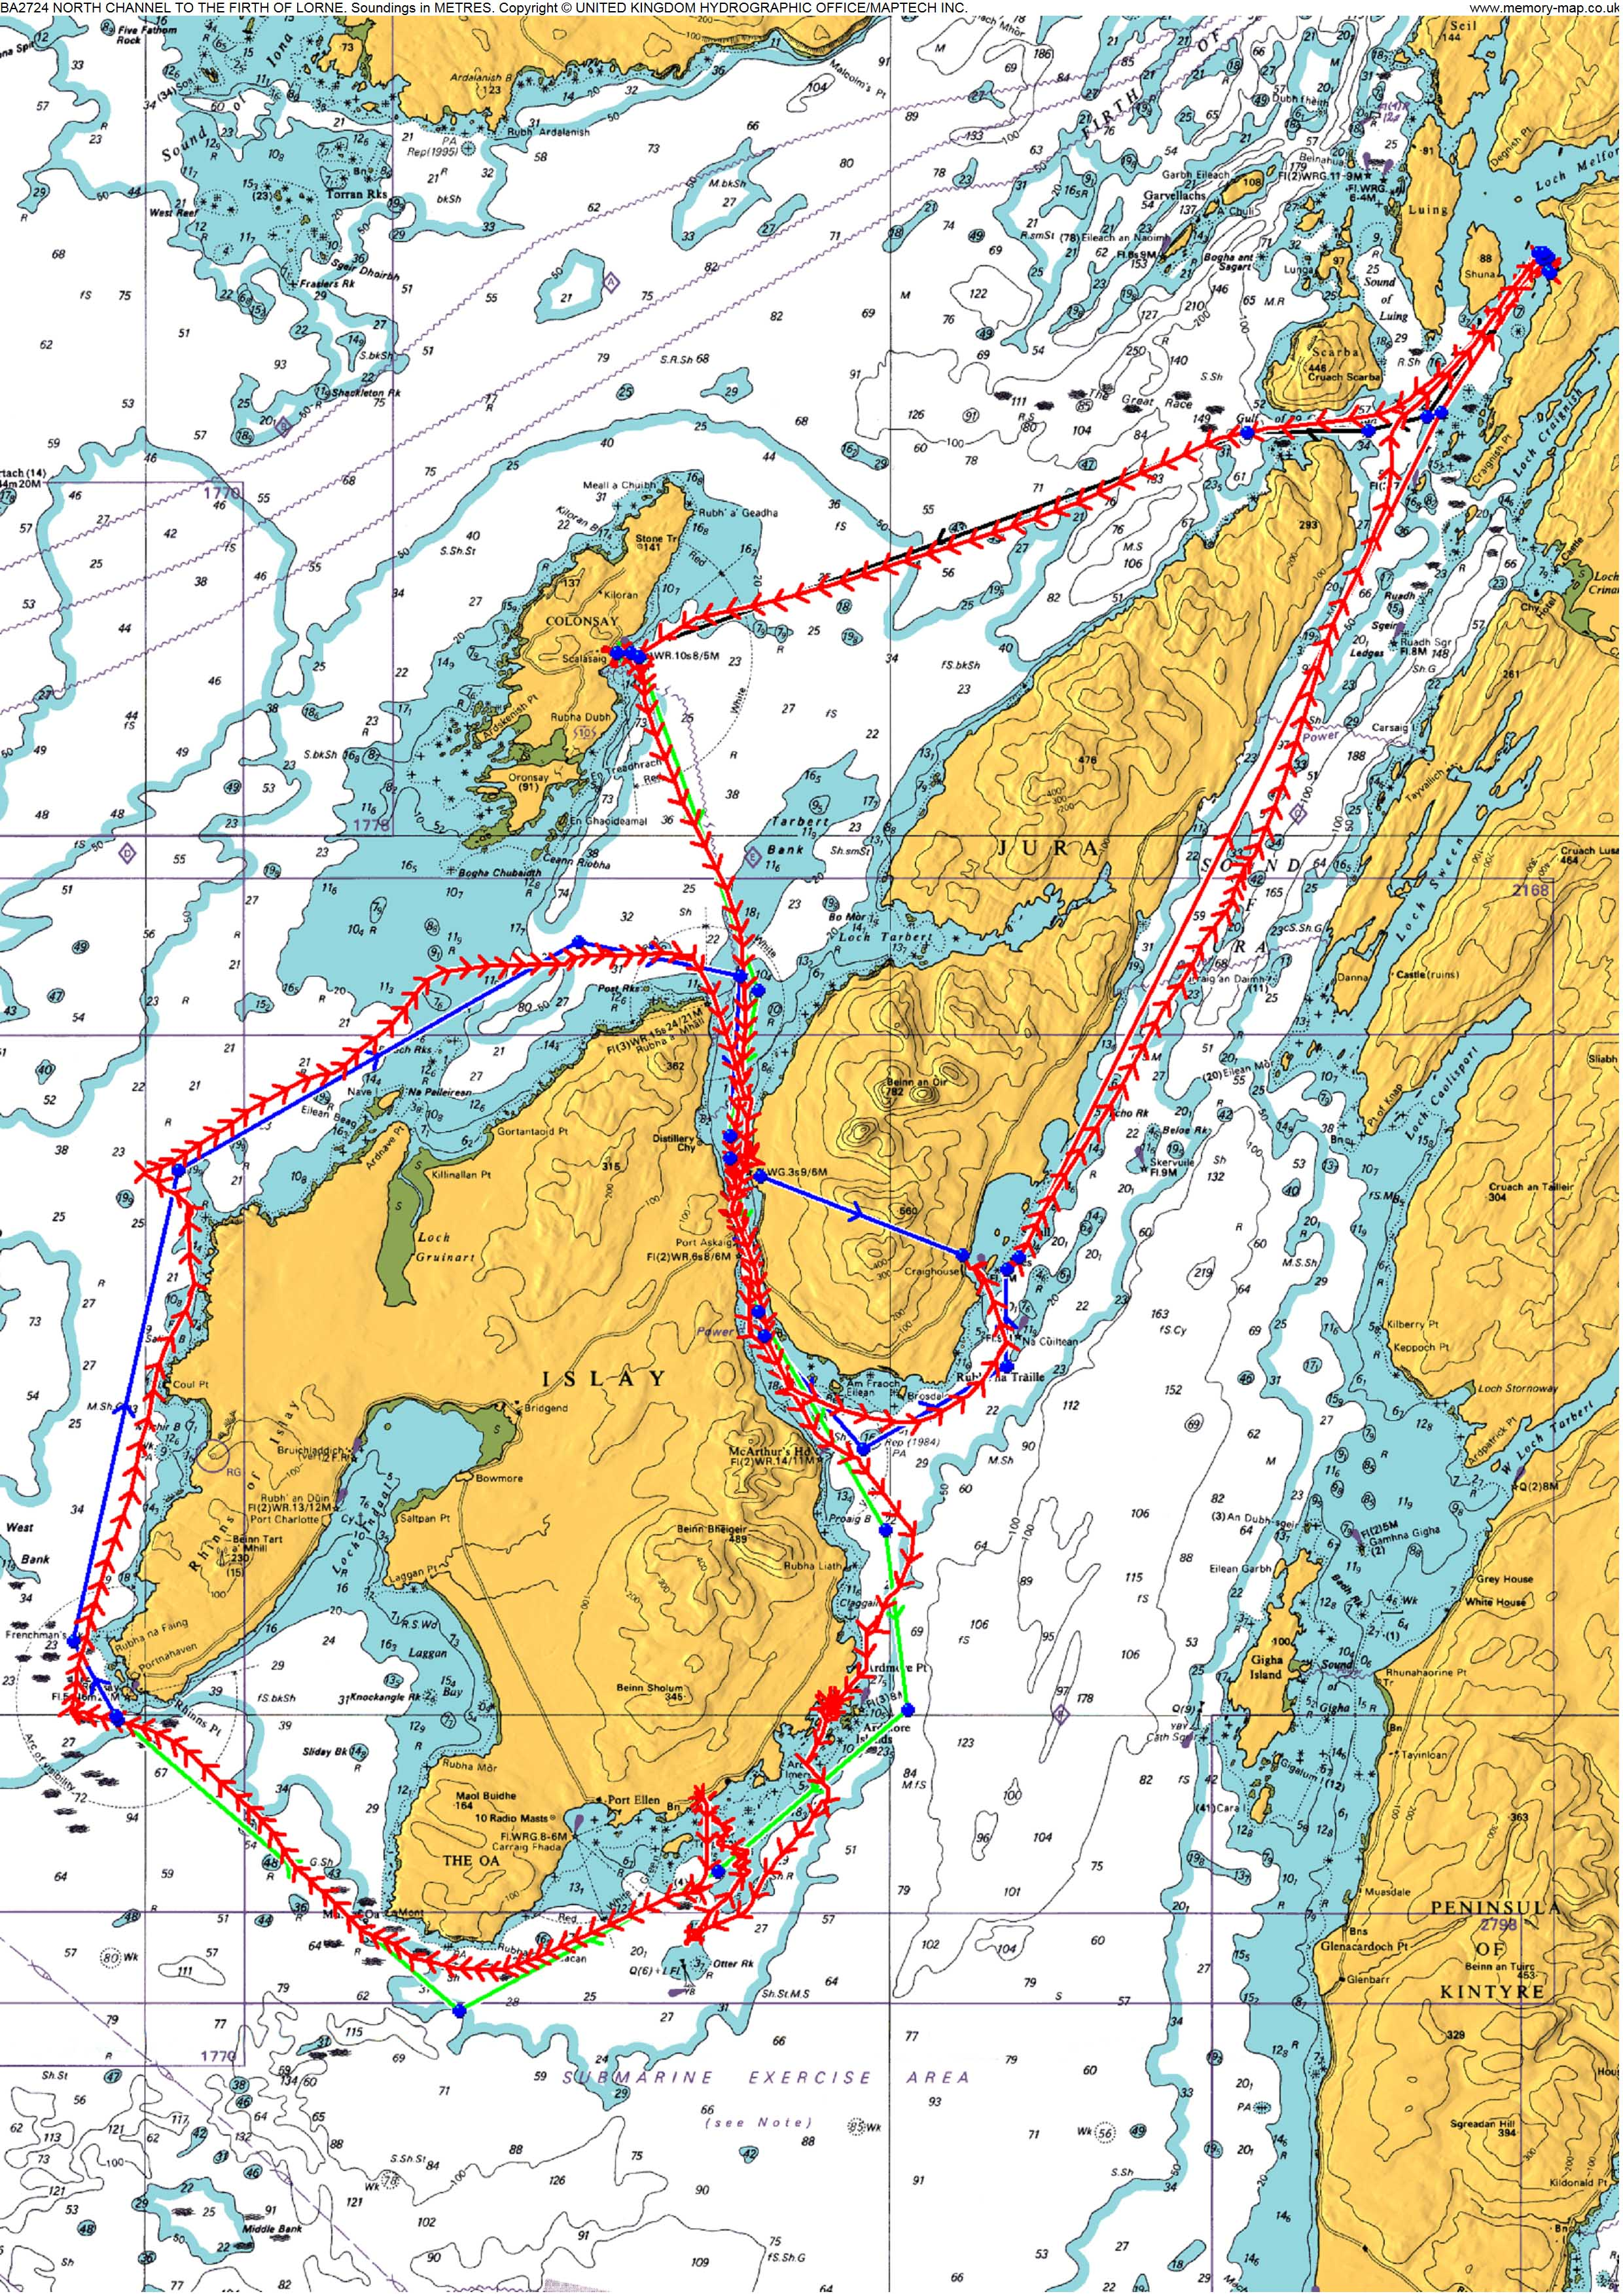 Isla and Jura circumnav image